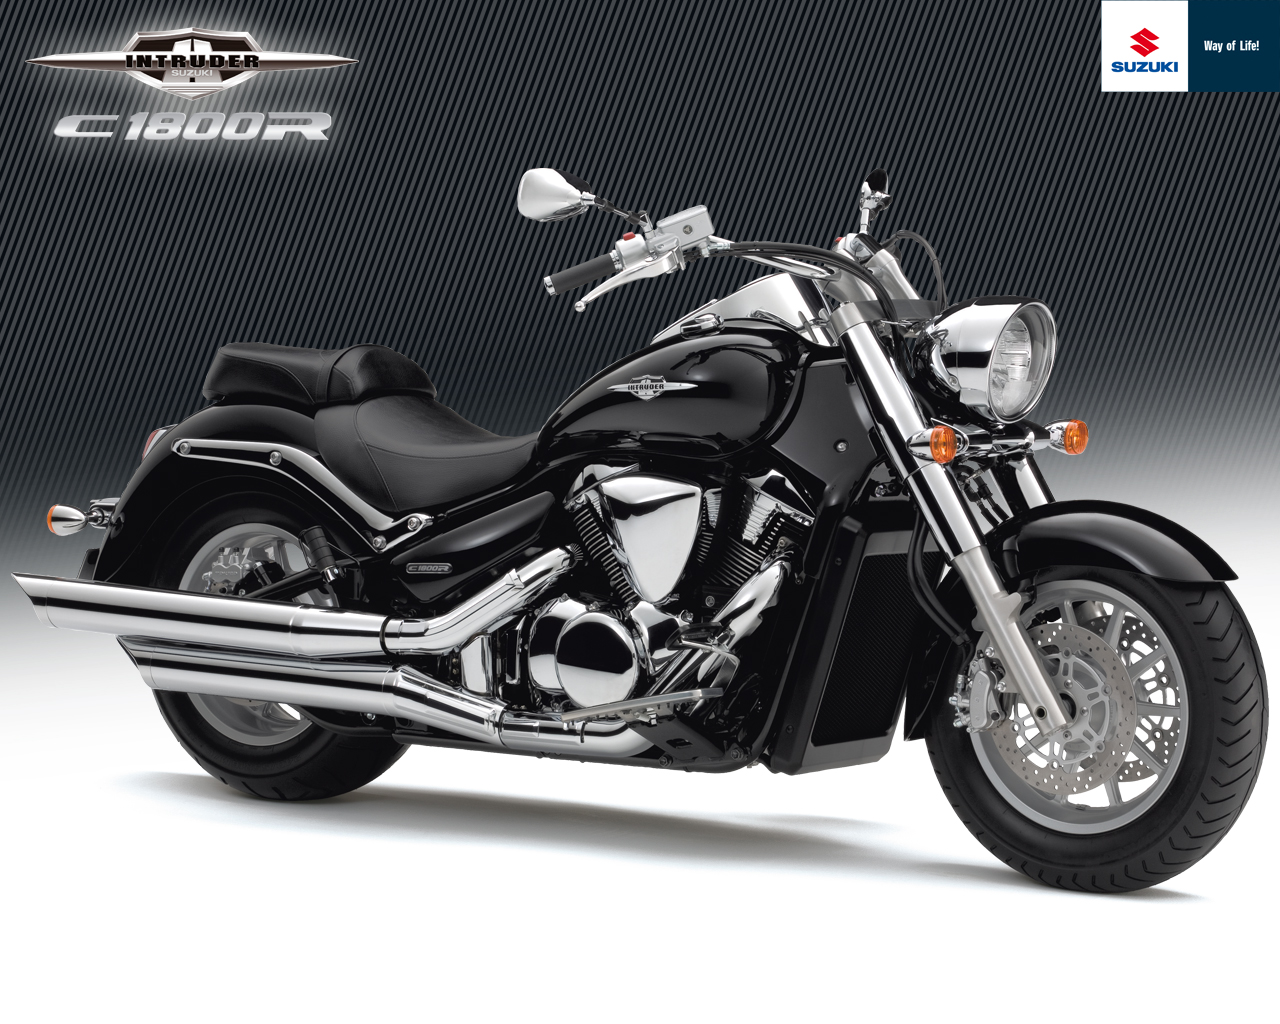 Suzuki Intruder C1800RT 2009 #5